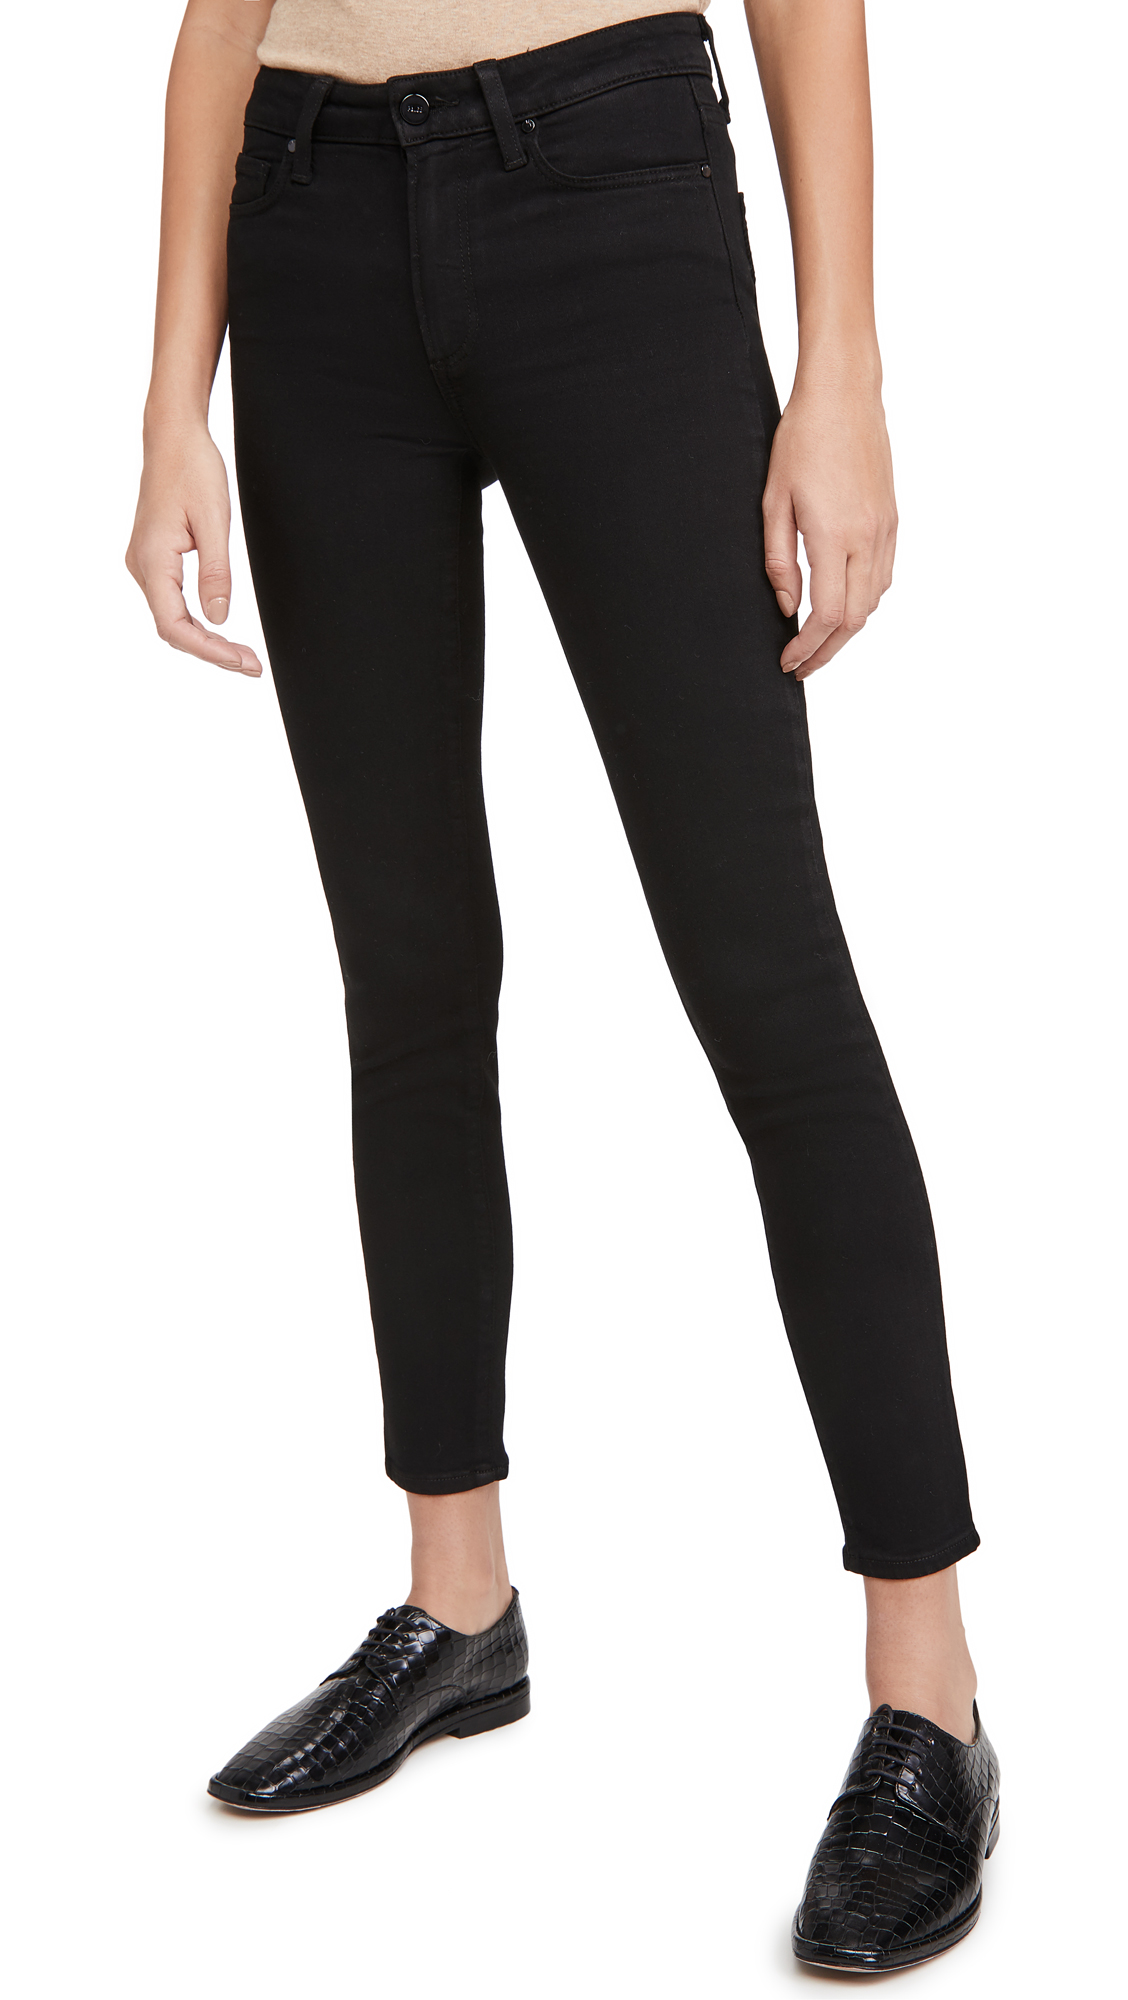 PAIGE High Rise Muse Black Shadow Jeans